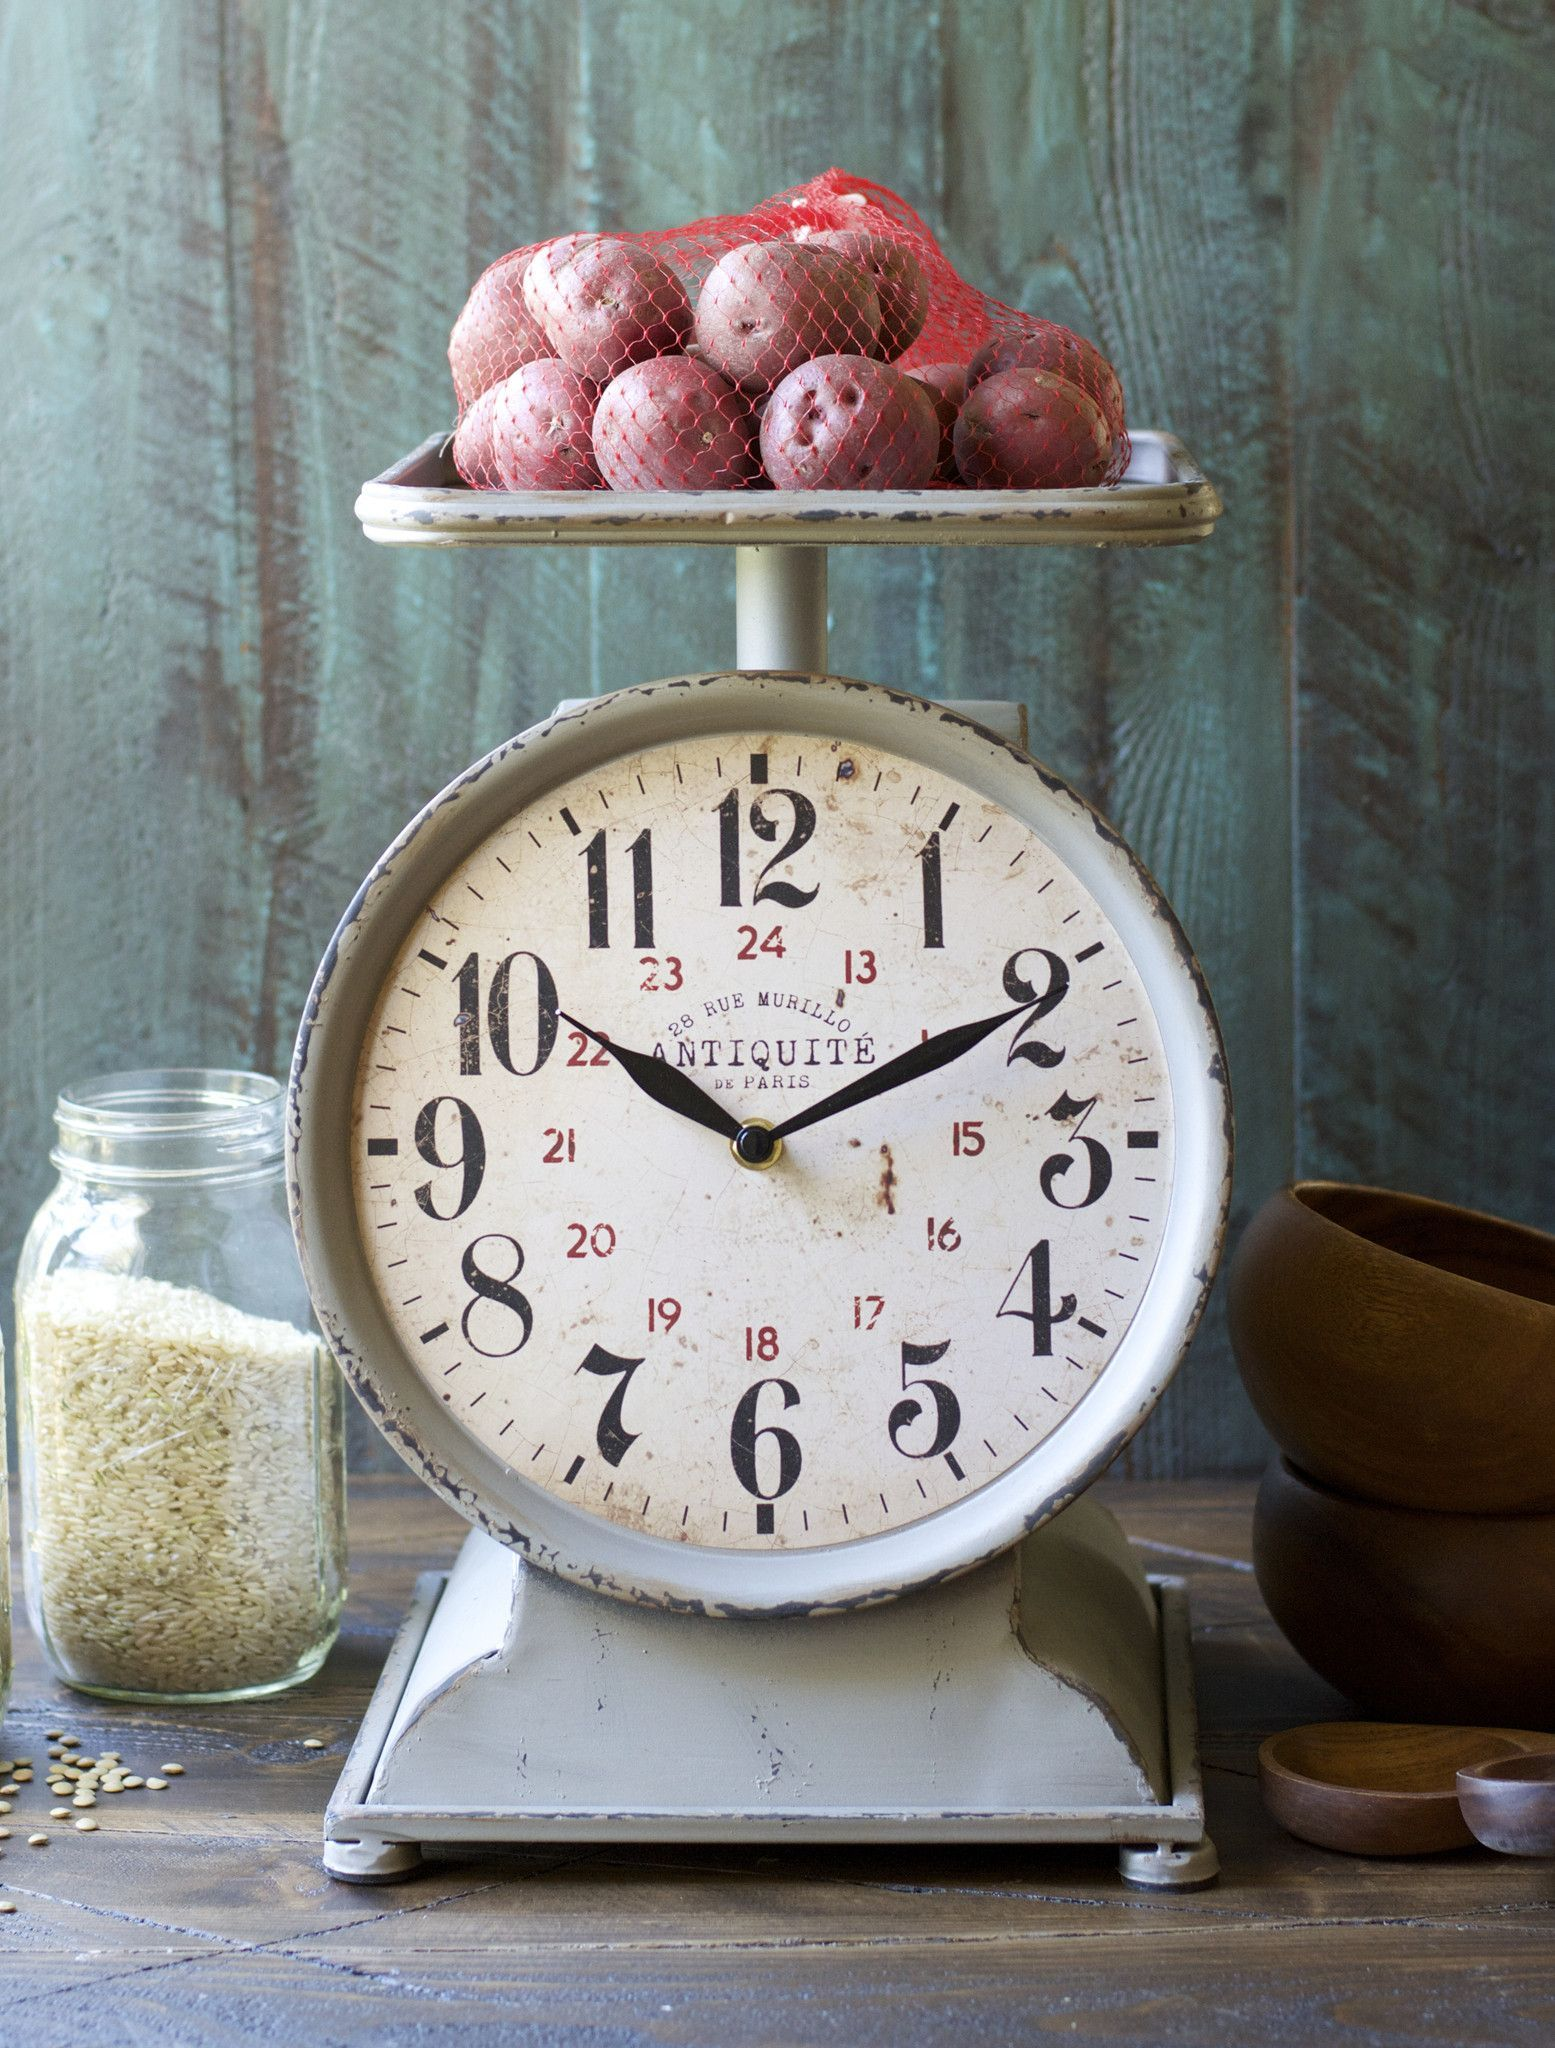 kitchen counter clocks decoration kitchen this unique grocery scale clock adds lovely farmhouse feel to any kitchen set on your counter for conversation piece follow gin creek kitchen farmhouse style pinterest farmhouse home